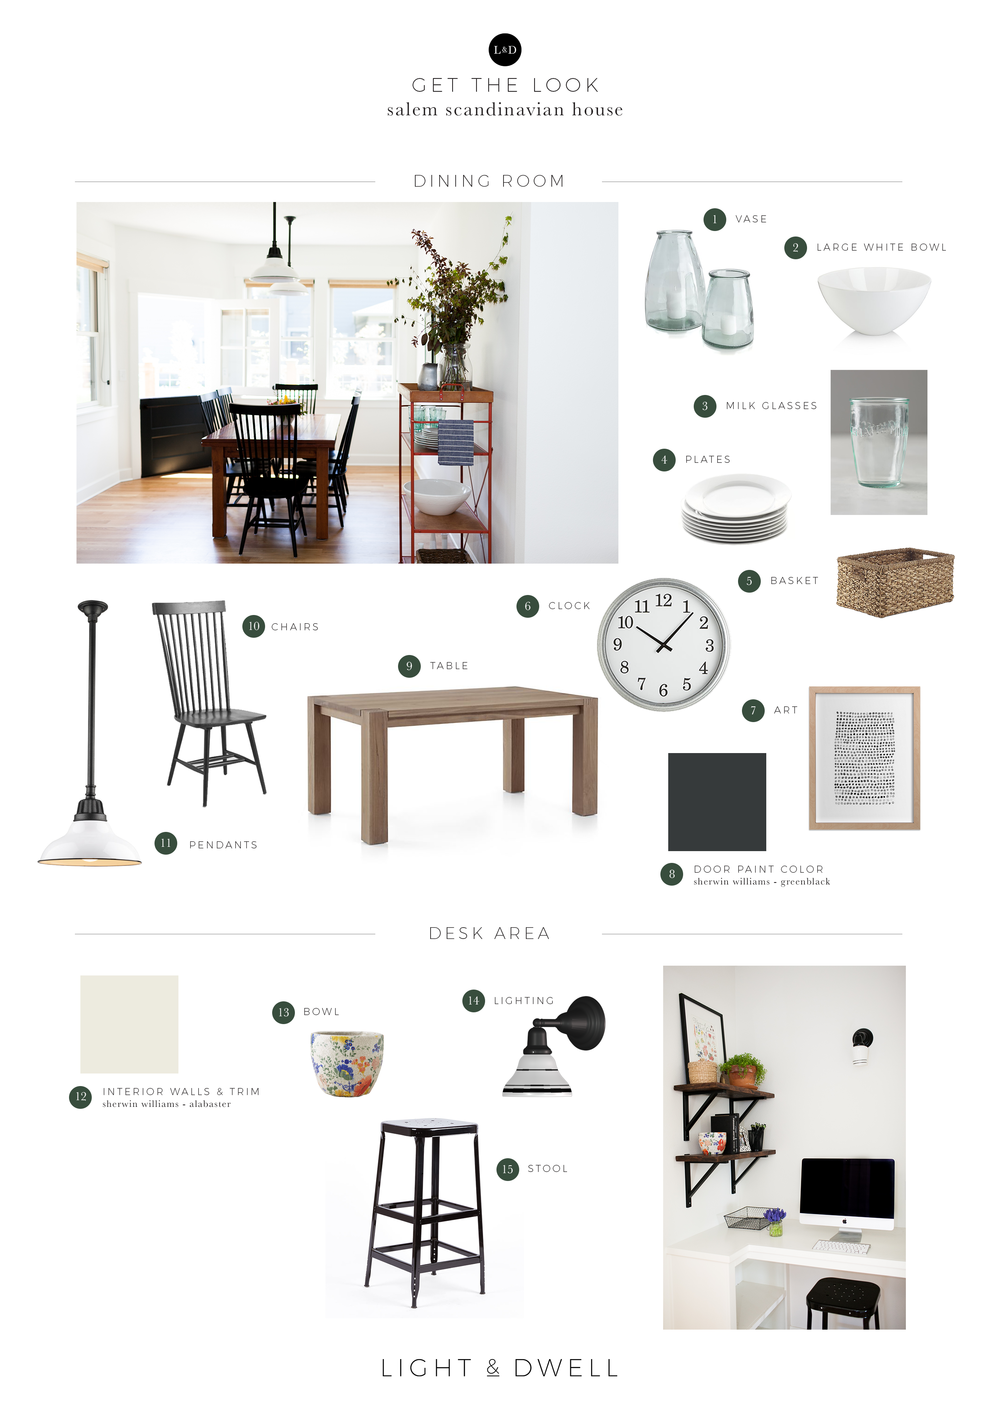 L+D_GetTheLook_Salem-Scandinavian_dining room&desk area.png